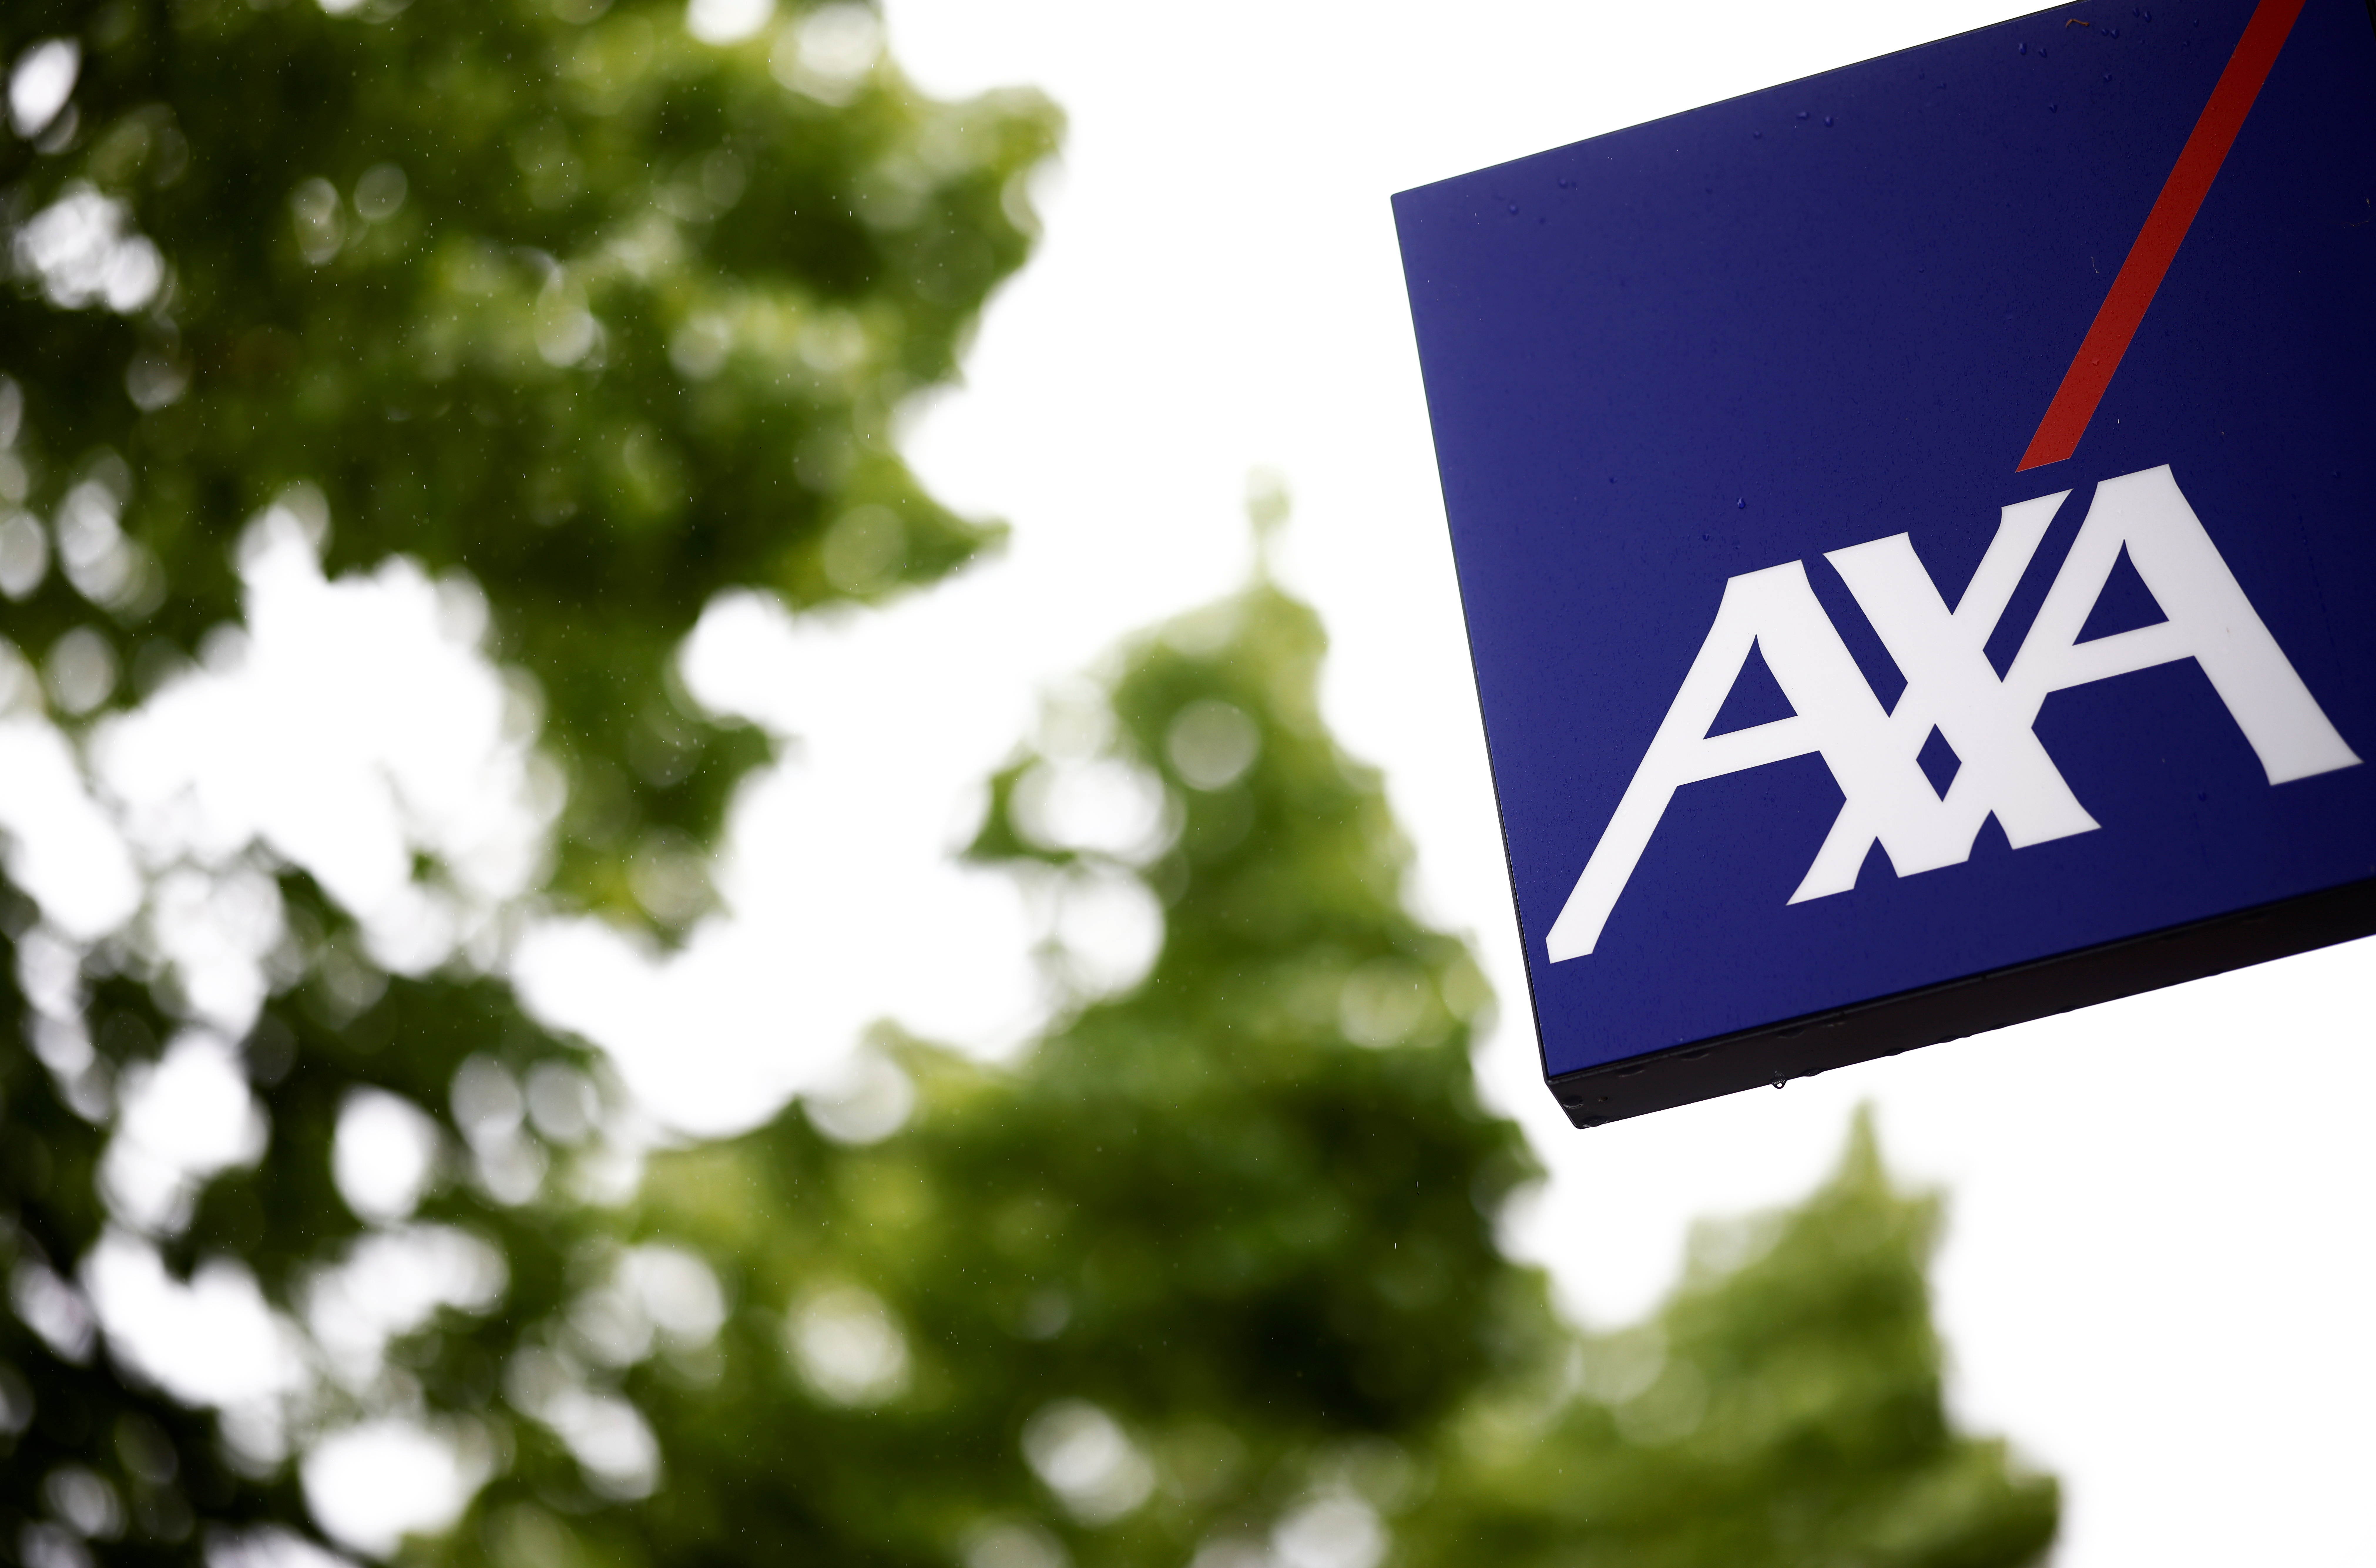 The logo of French Insurer Axa is seen outside a building in Les Sorinieres near Nantes, France, May 4, 2021. REUTERS/Stephane Mahe